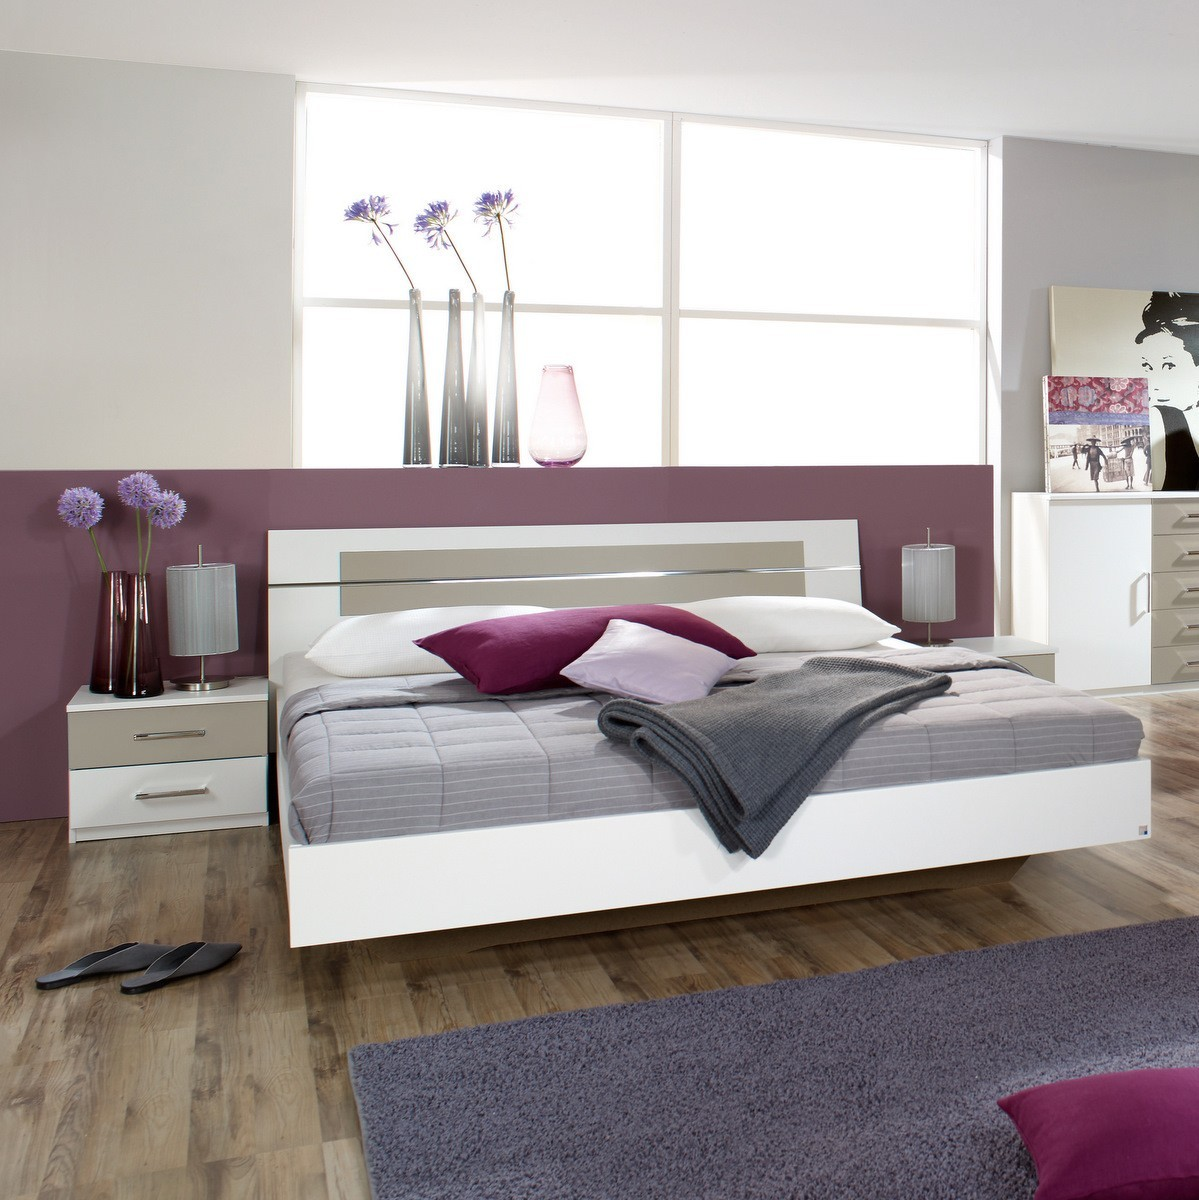 bett 160x200 doppelbett burano wei sandgrau 2x nachtkommode ebay. Black Bedroom Furniture Sets. Home Design Ideas